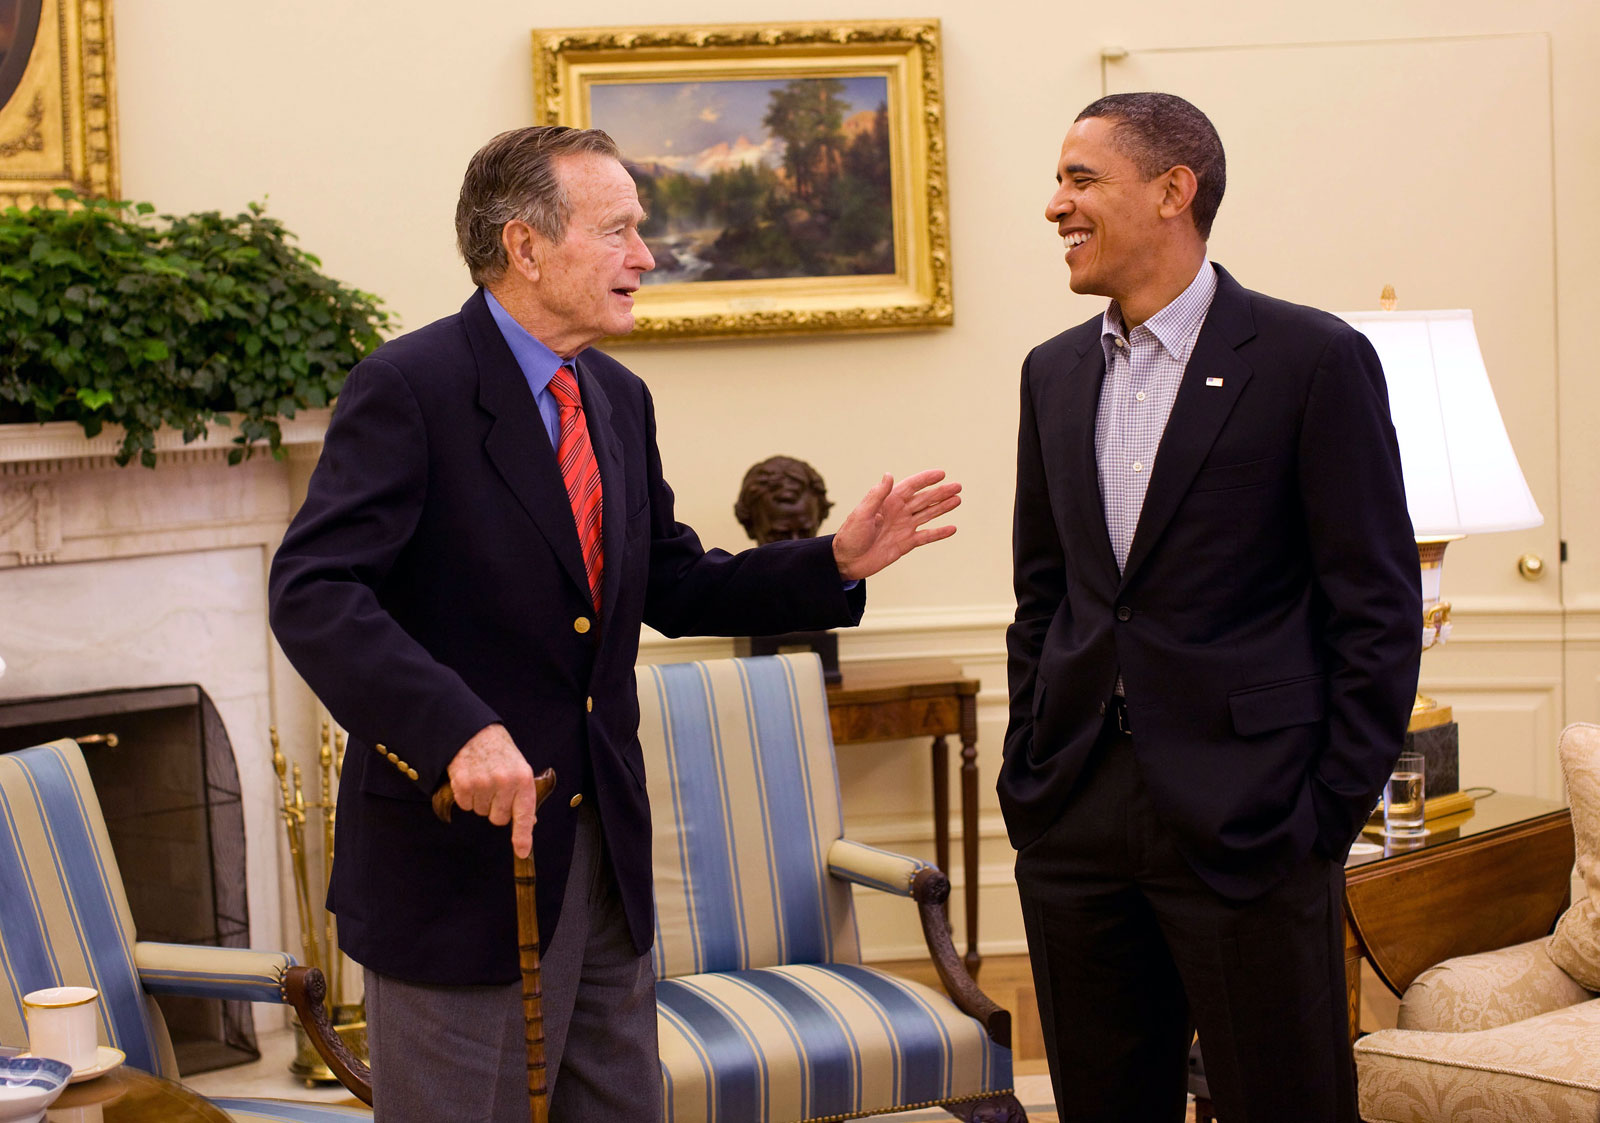 ¿Cuánto mide George H. W. Bush? - Real height George-Bush-and-Obama-in-Oval-Office